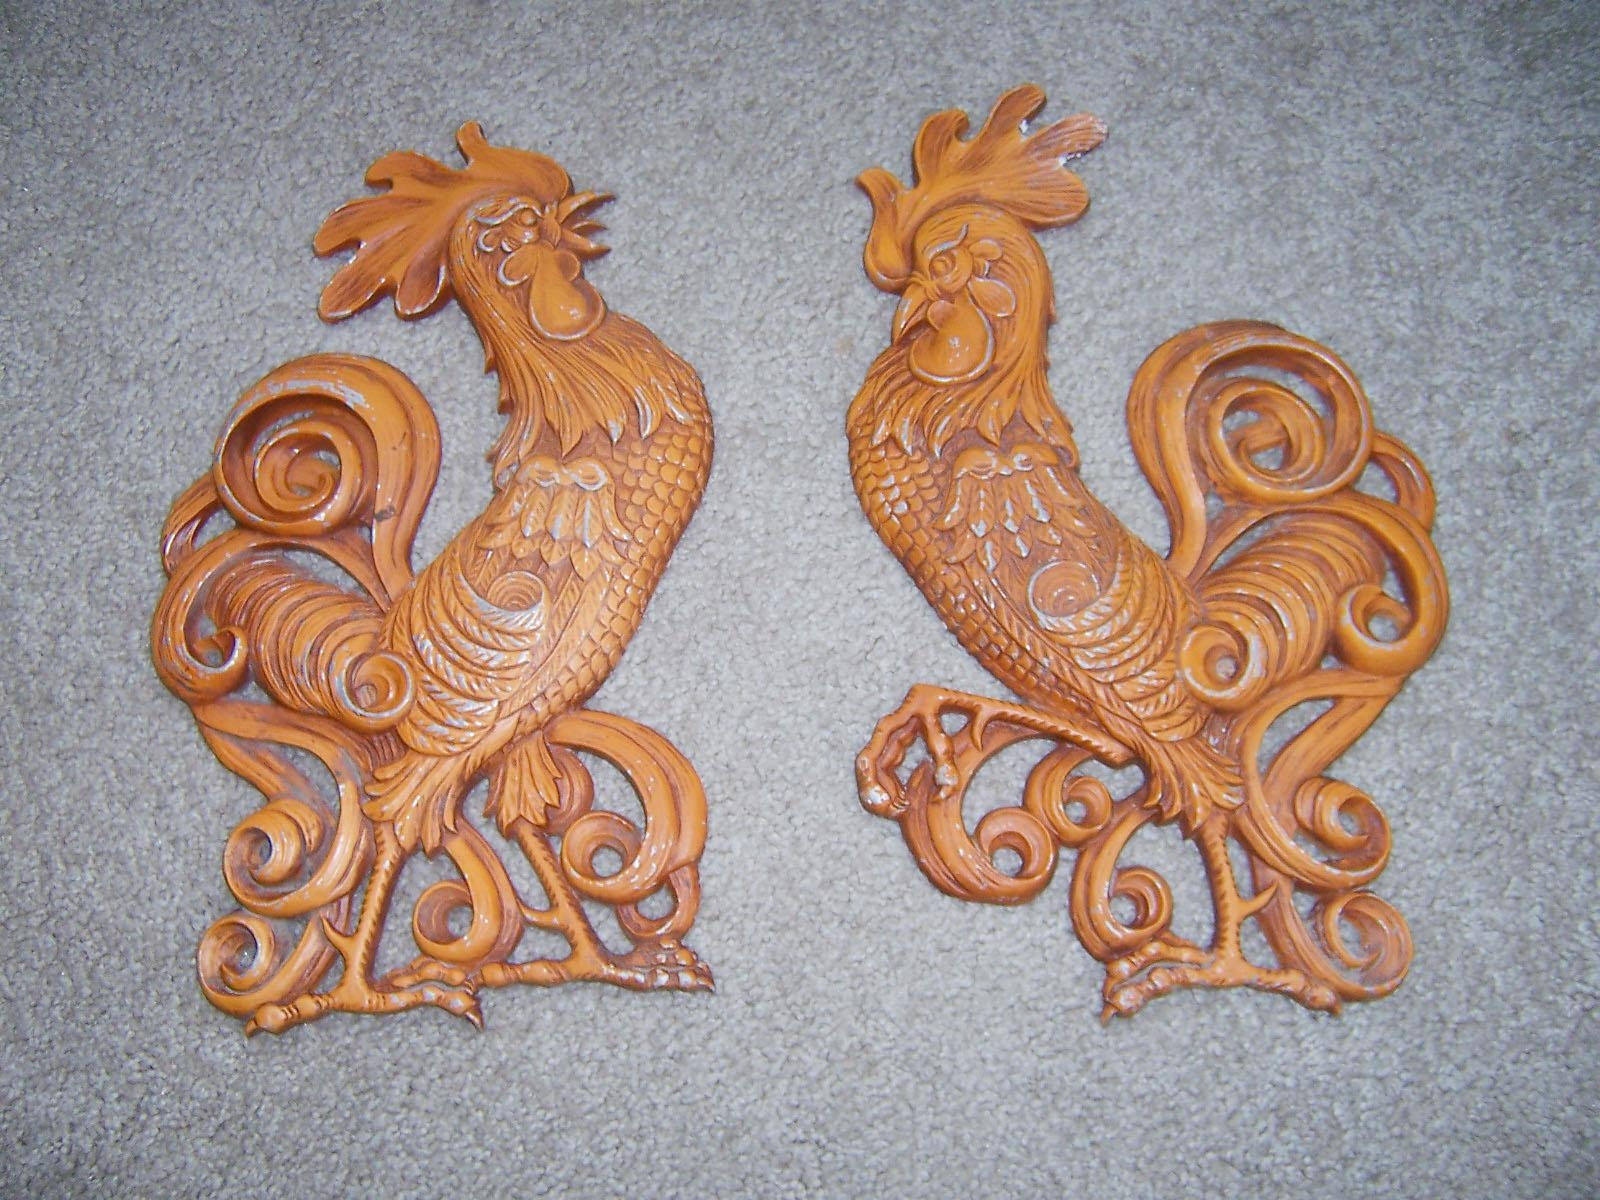 Vintage Goodness 1.0: Featured Collectible - Vintage Sexton Wall Decor within Metal Rooster Wall Decor